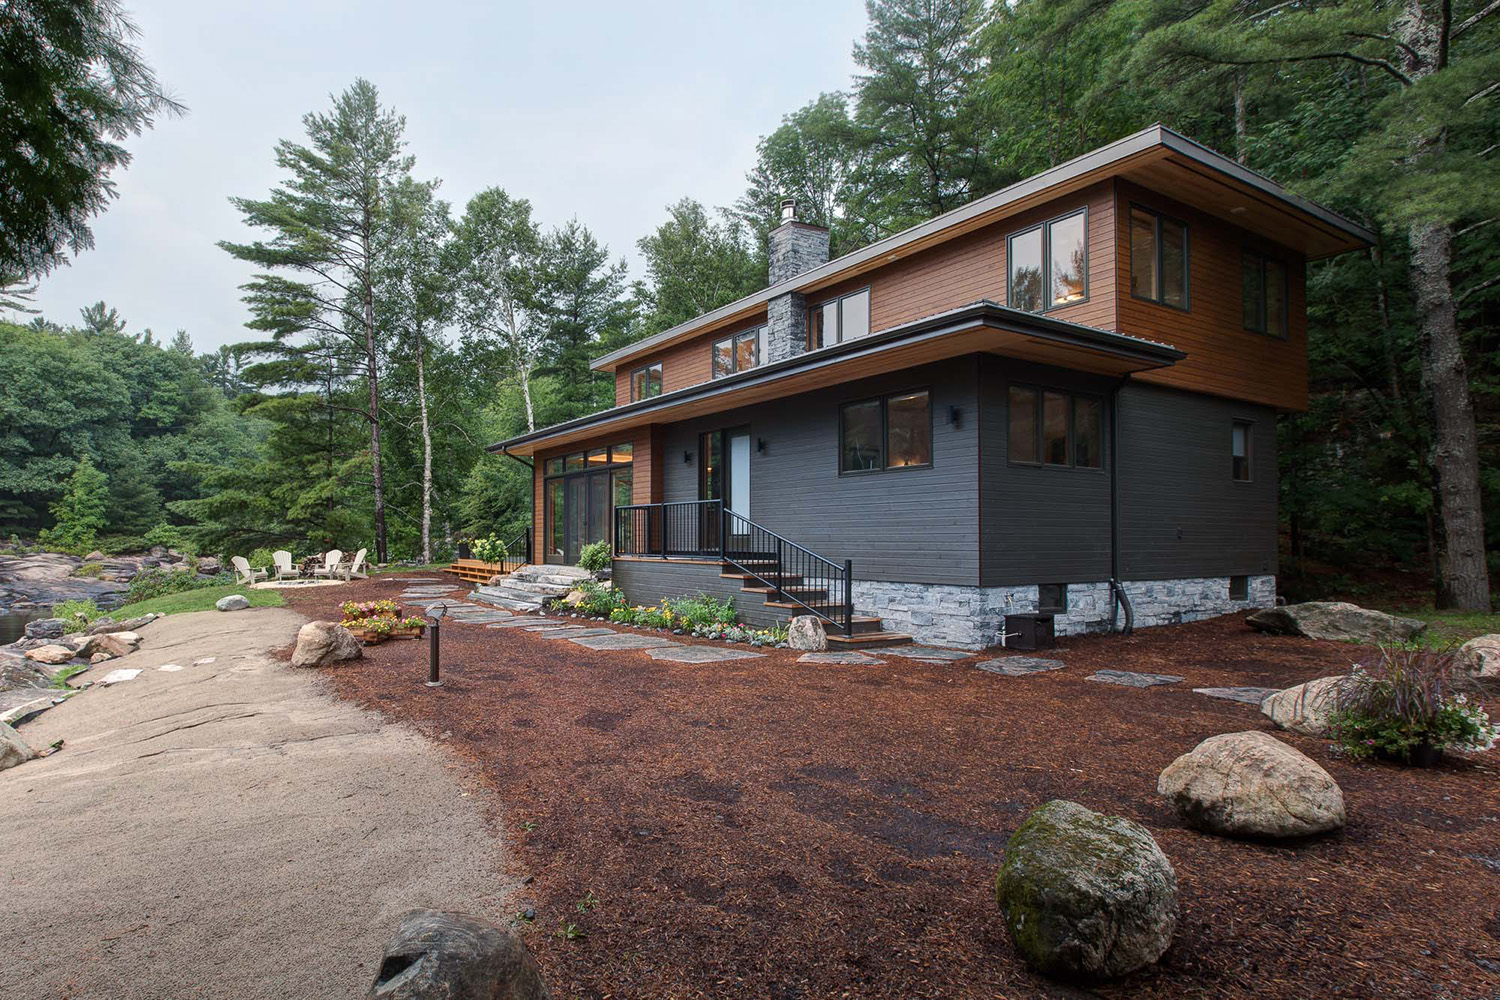 Contemporary Lake Rousseau cottage with exterior landscaping and campfire pit with Adirondack chairs